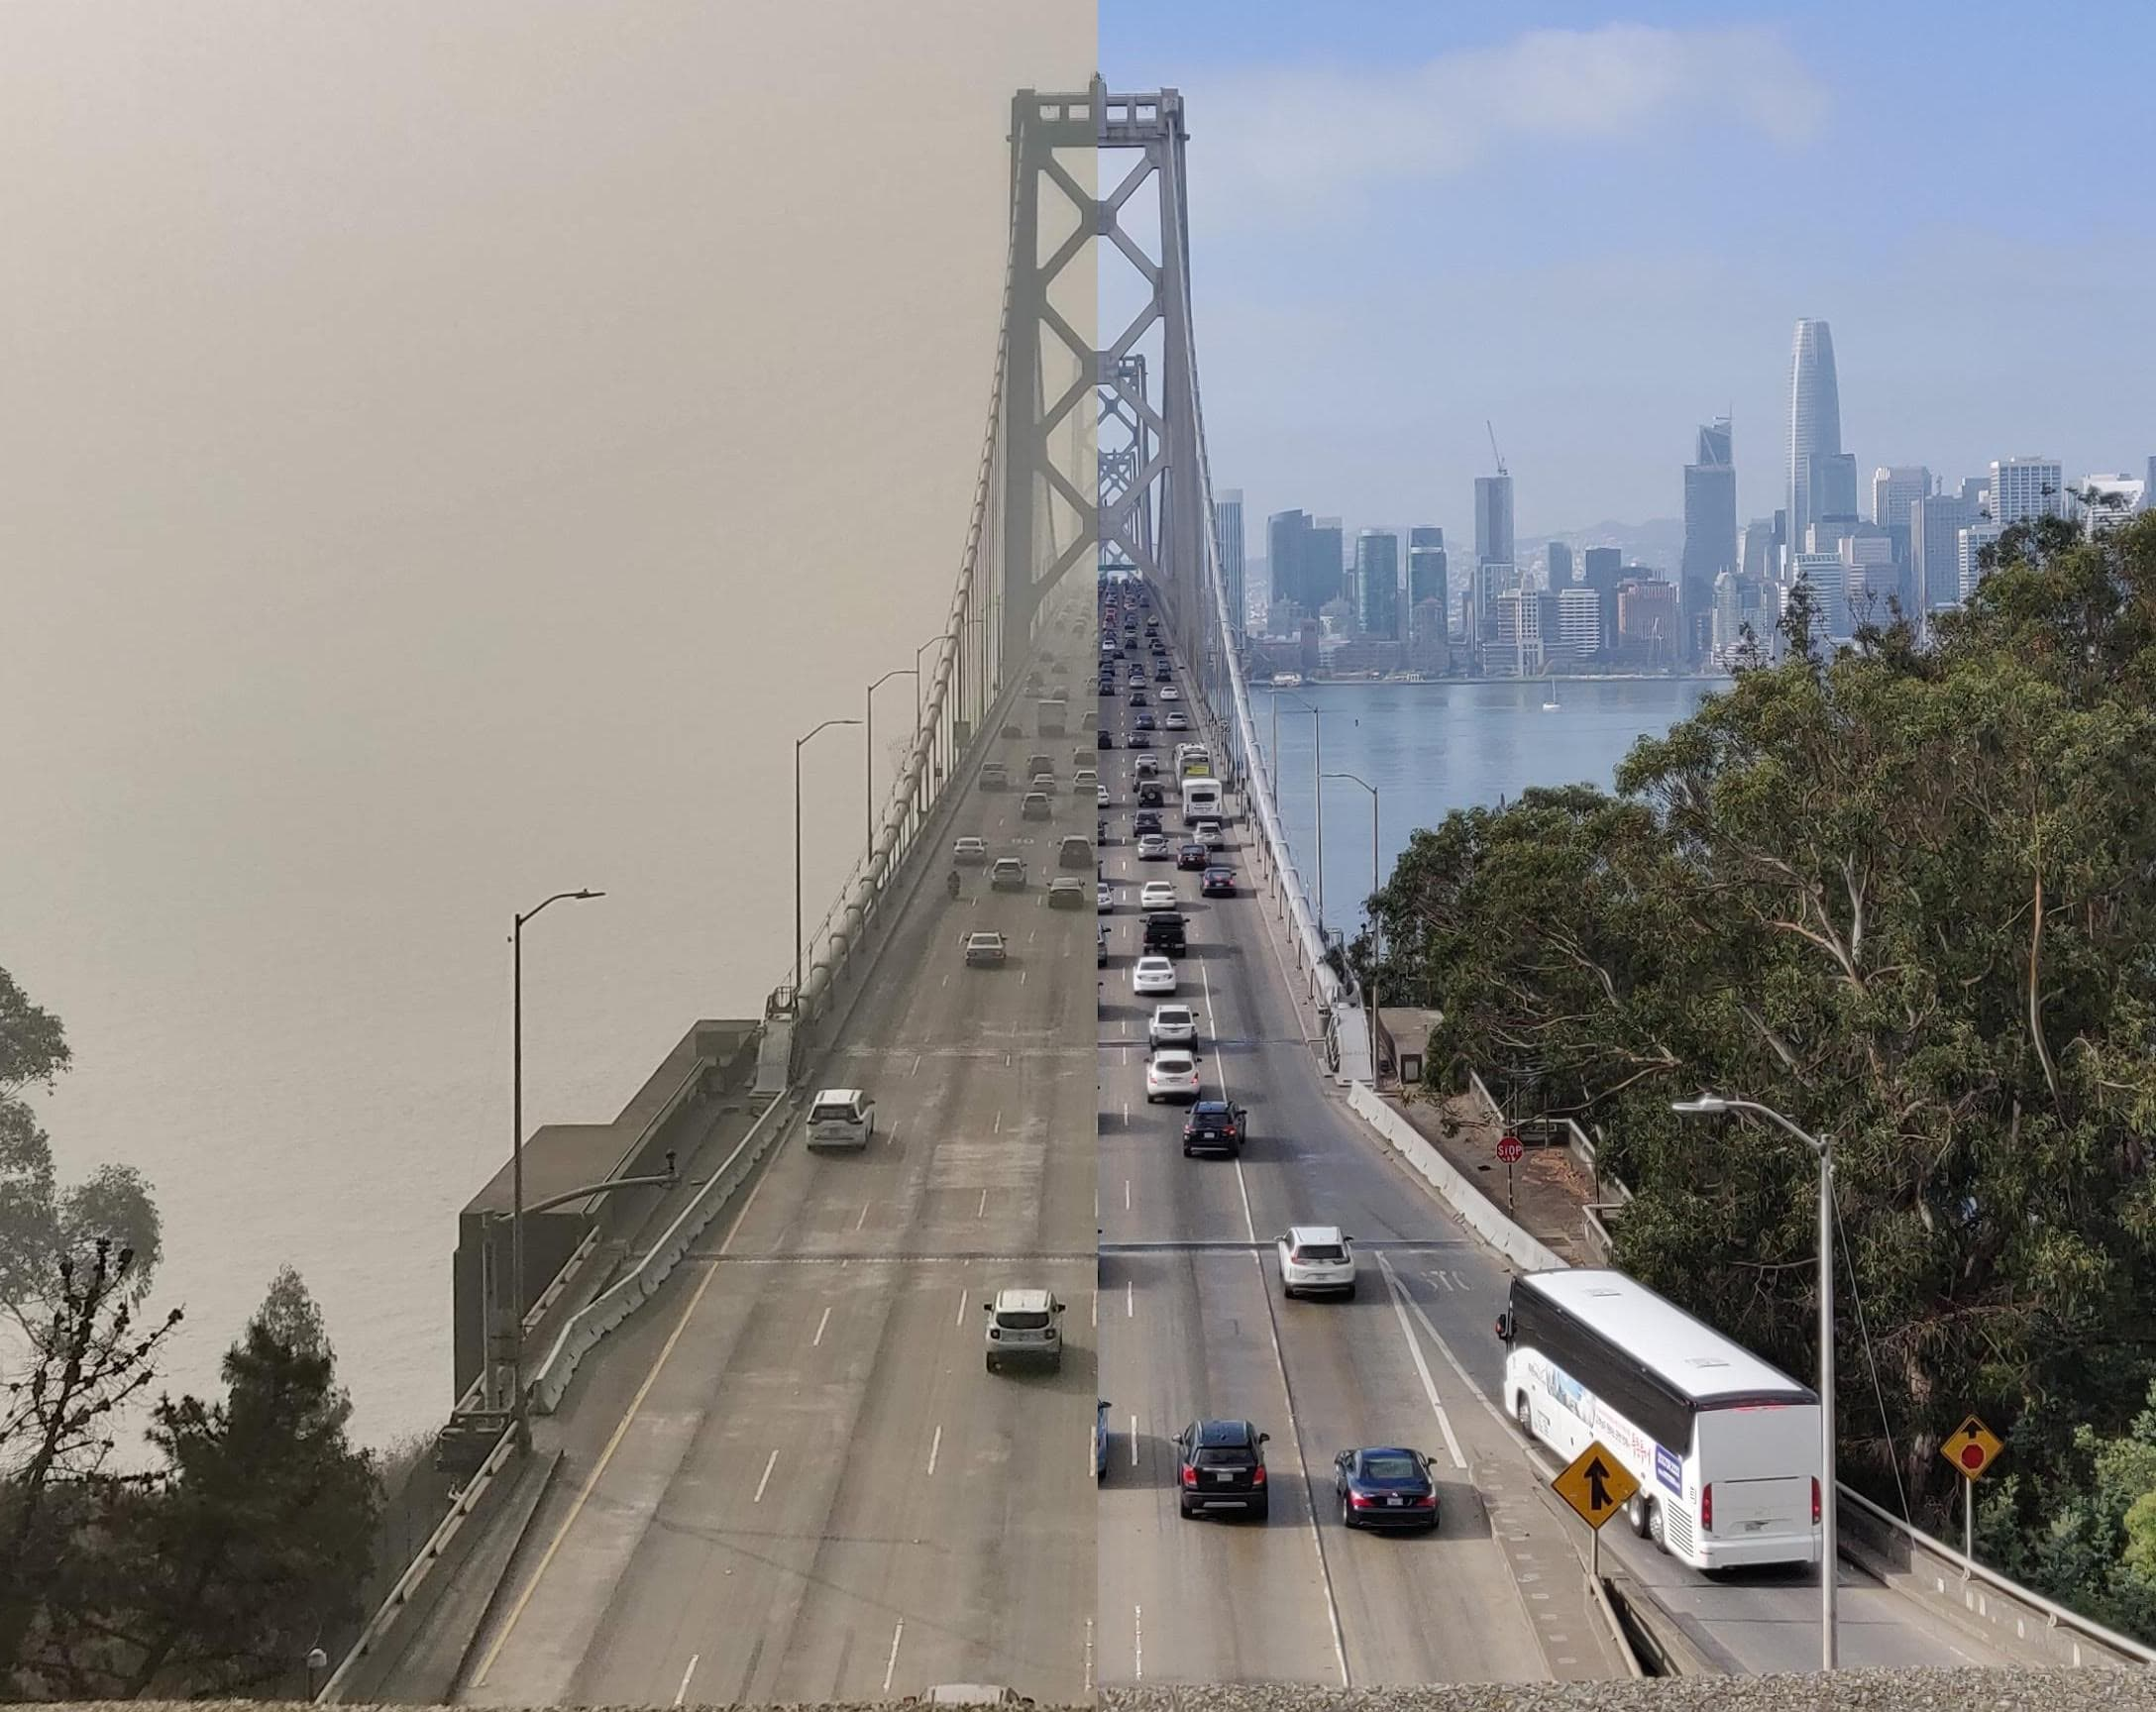 Camp Fire effects on air quality in San Francisco